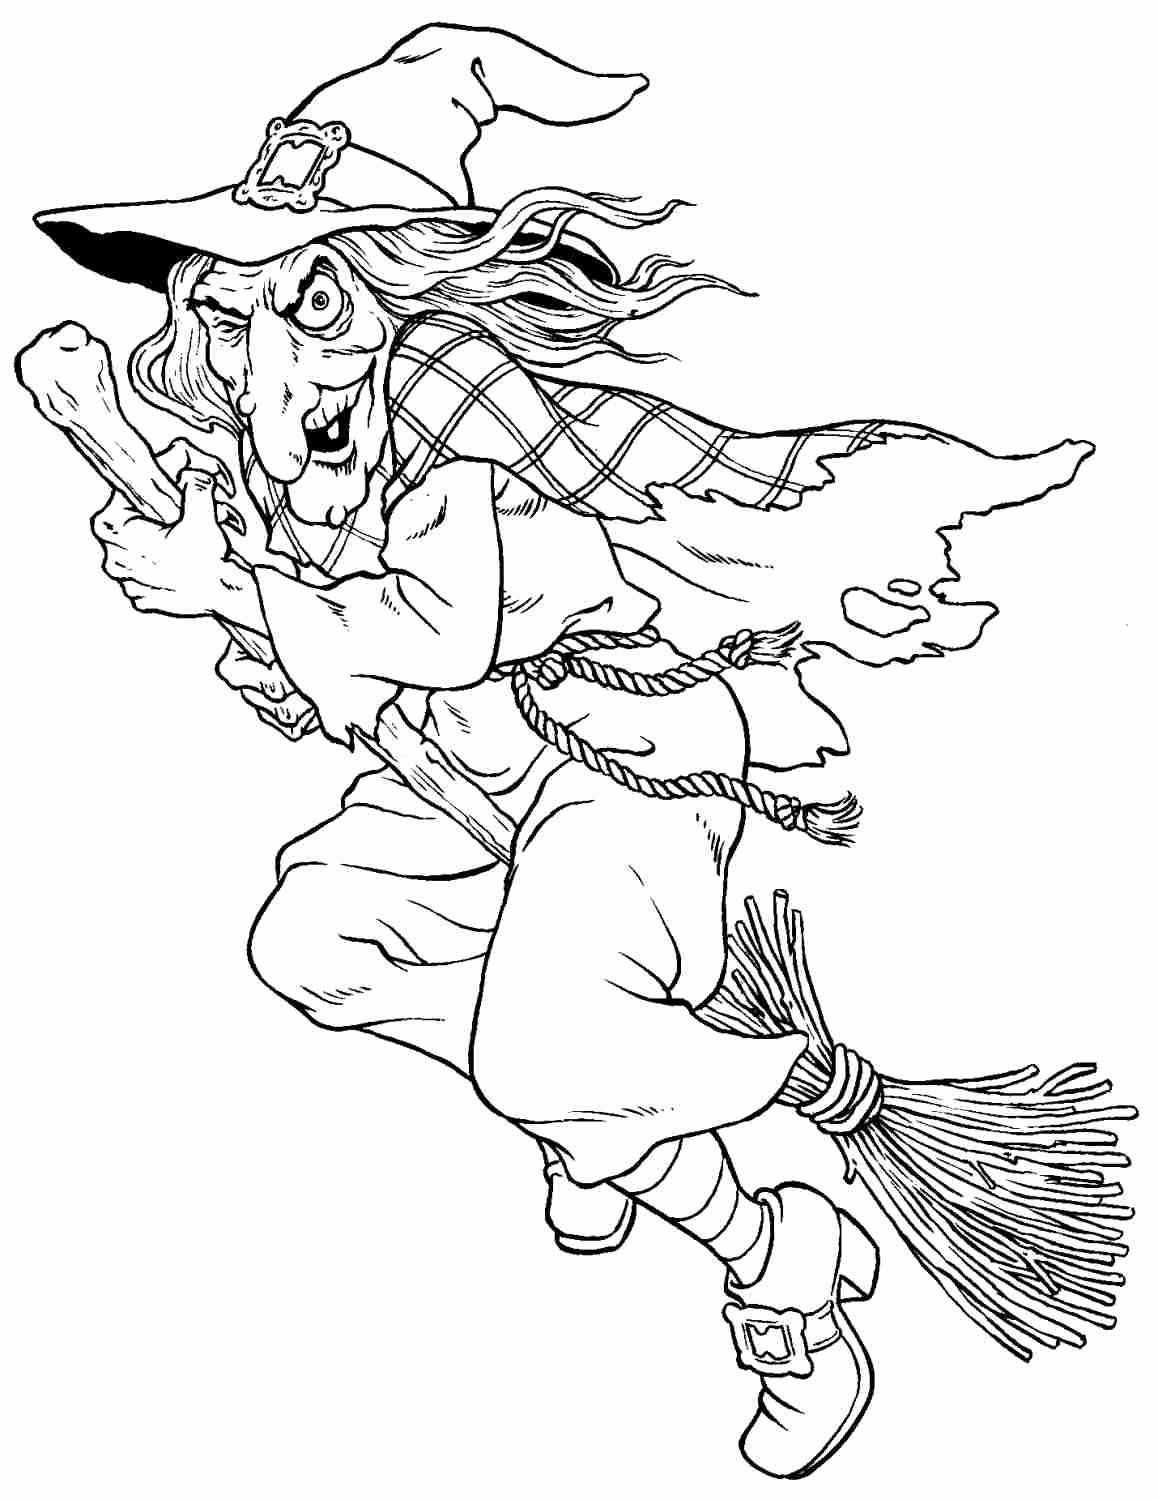 Witch Coloring Pages for Adults Luxury Witches Colouring ...